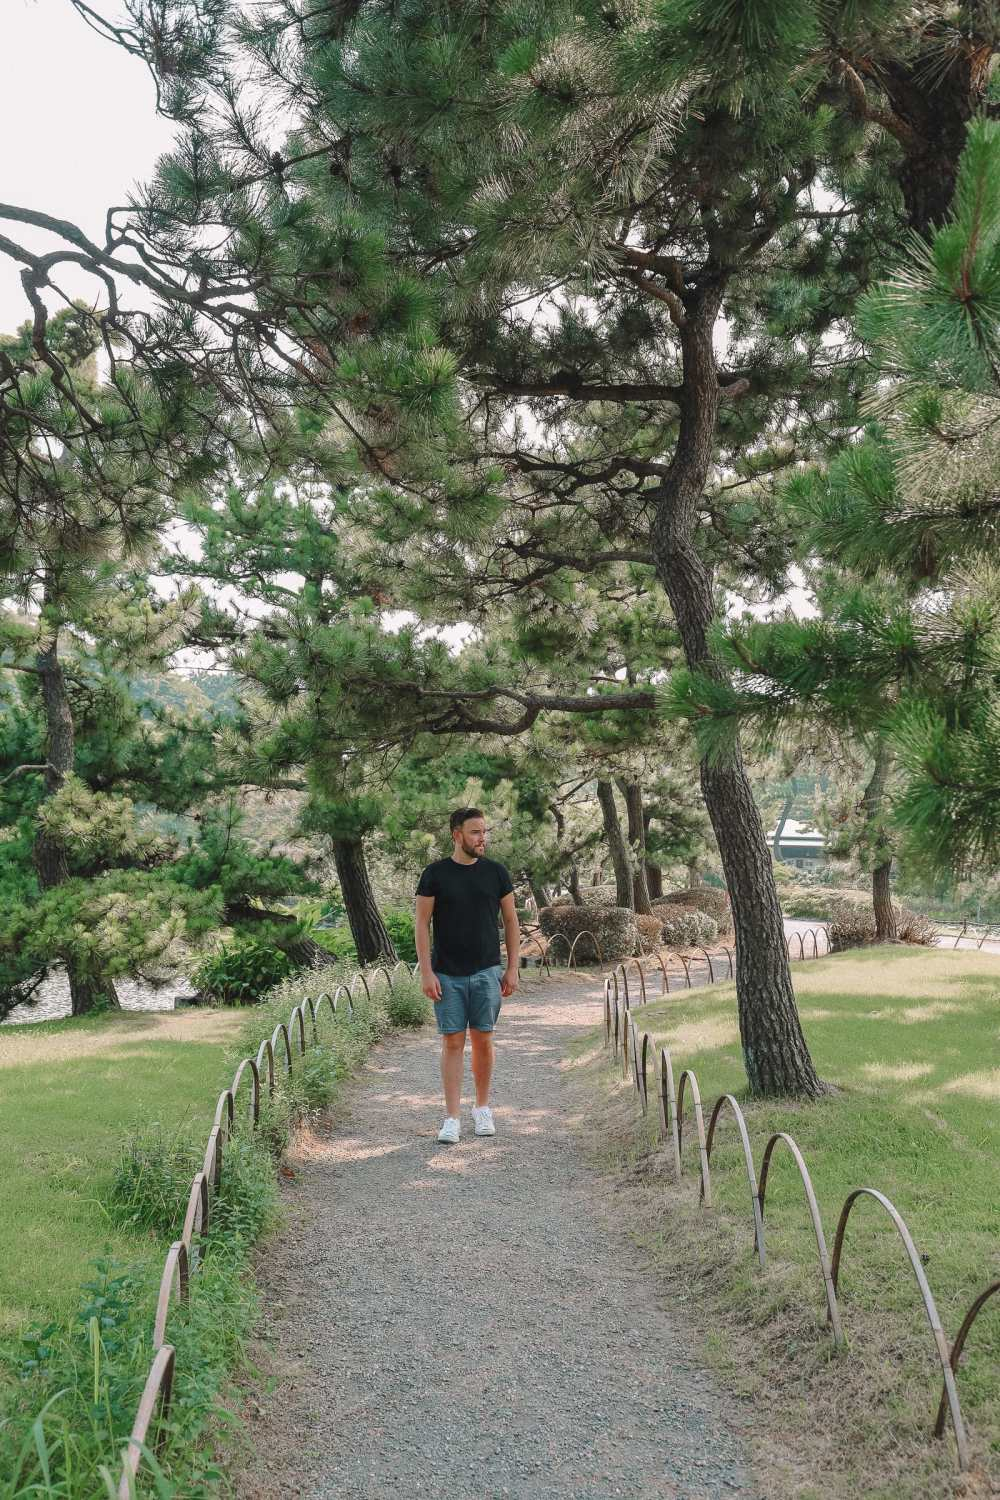 Exploring Sankeien Garden, Markets And The Mall In Yokohama - Japan (26)